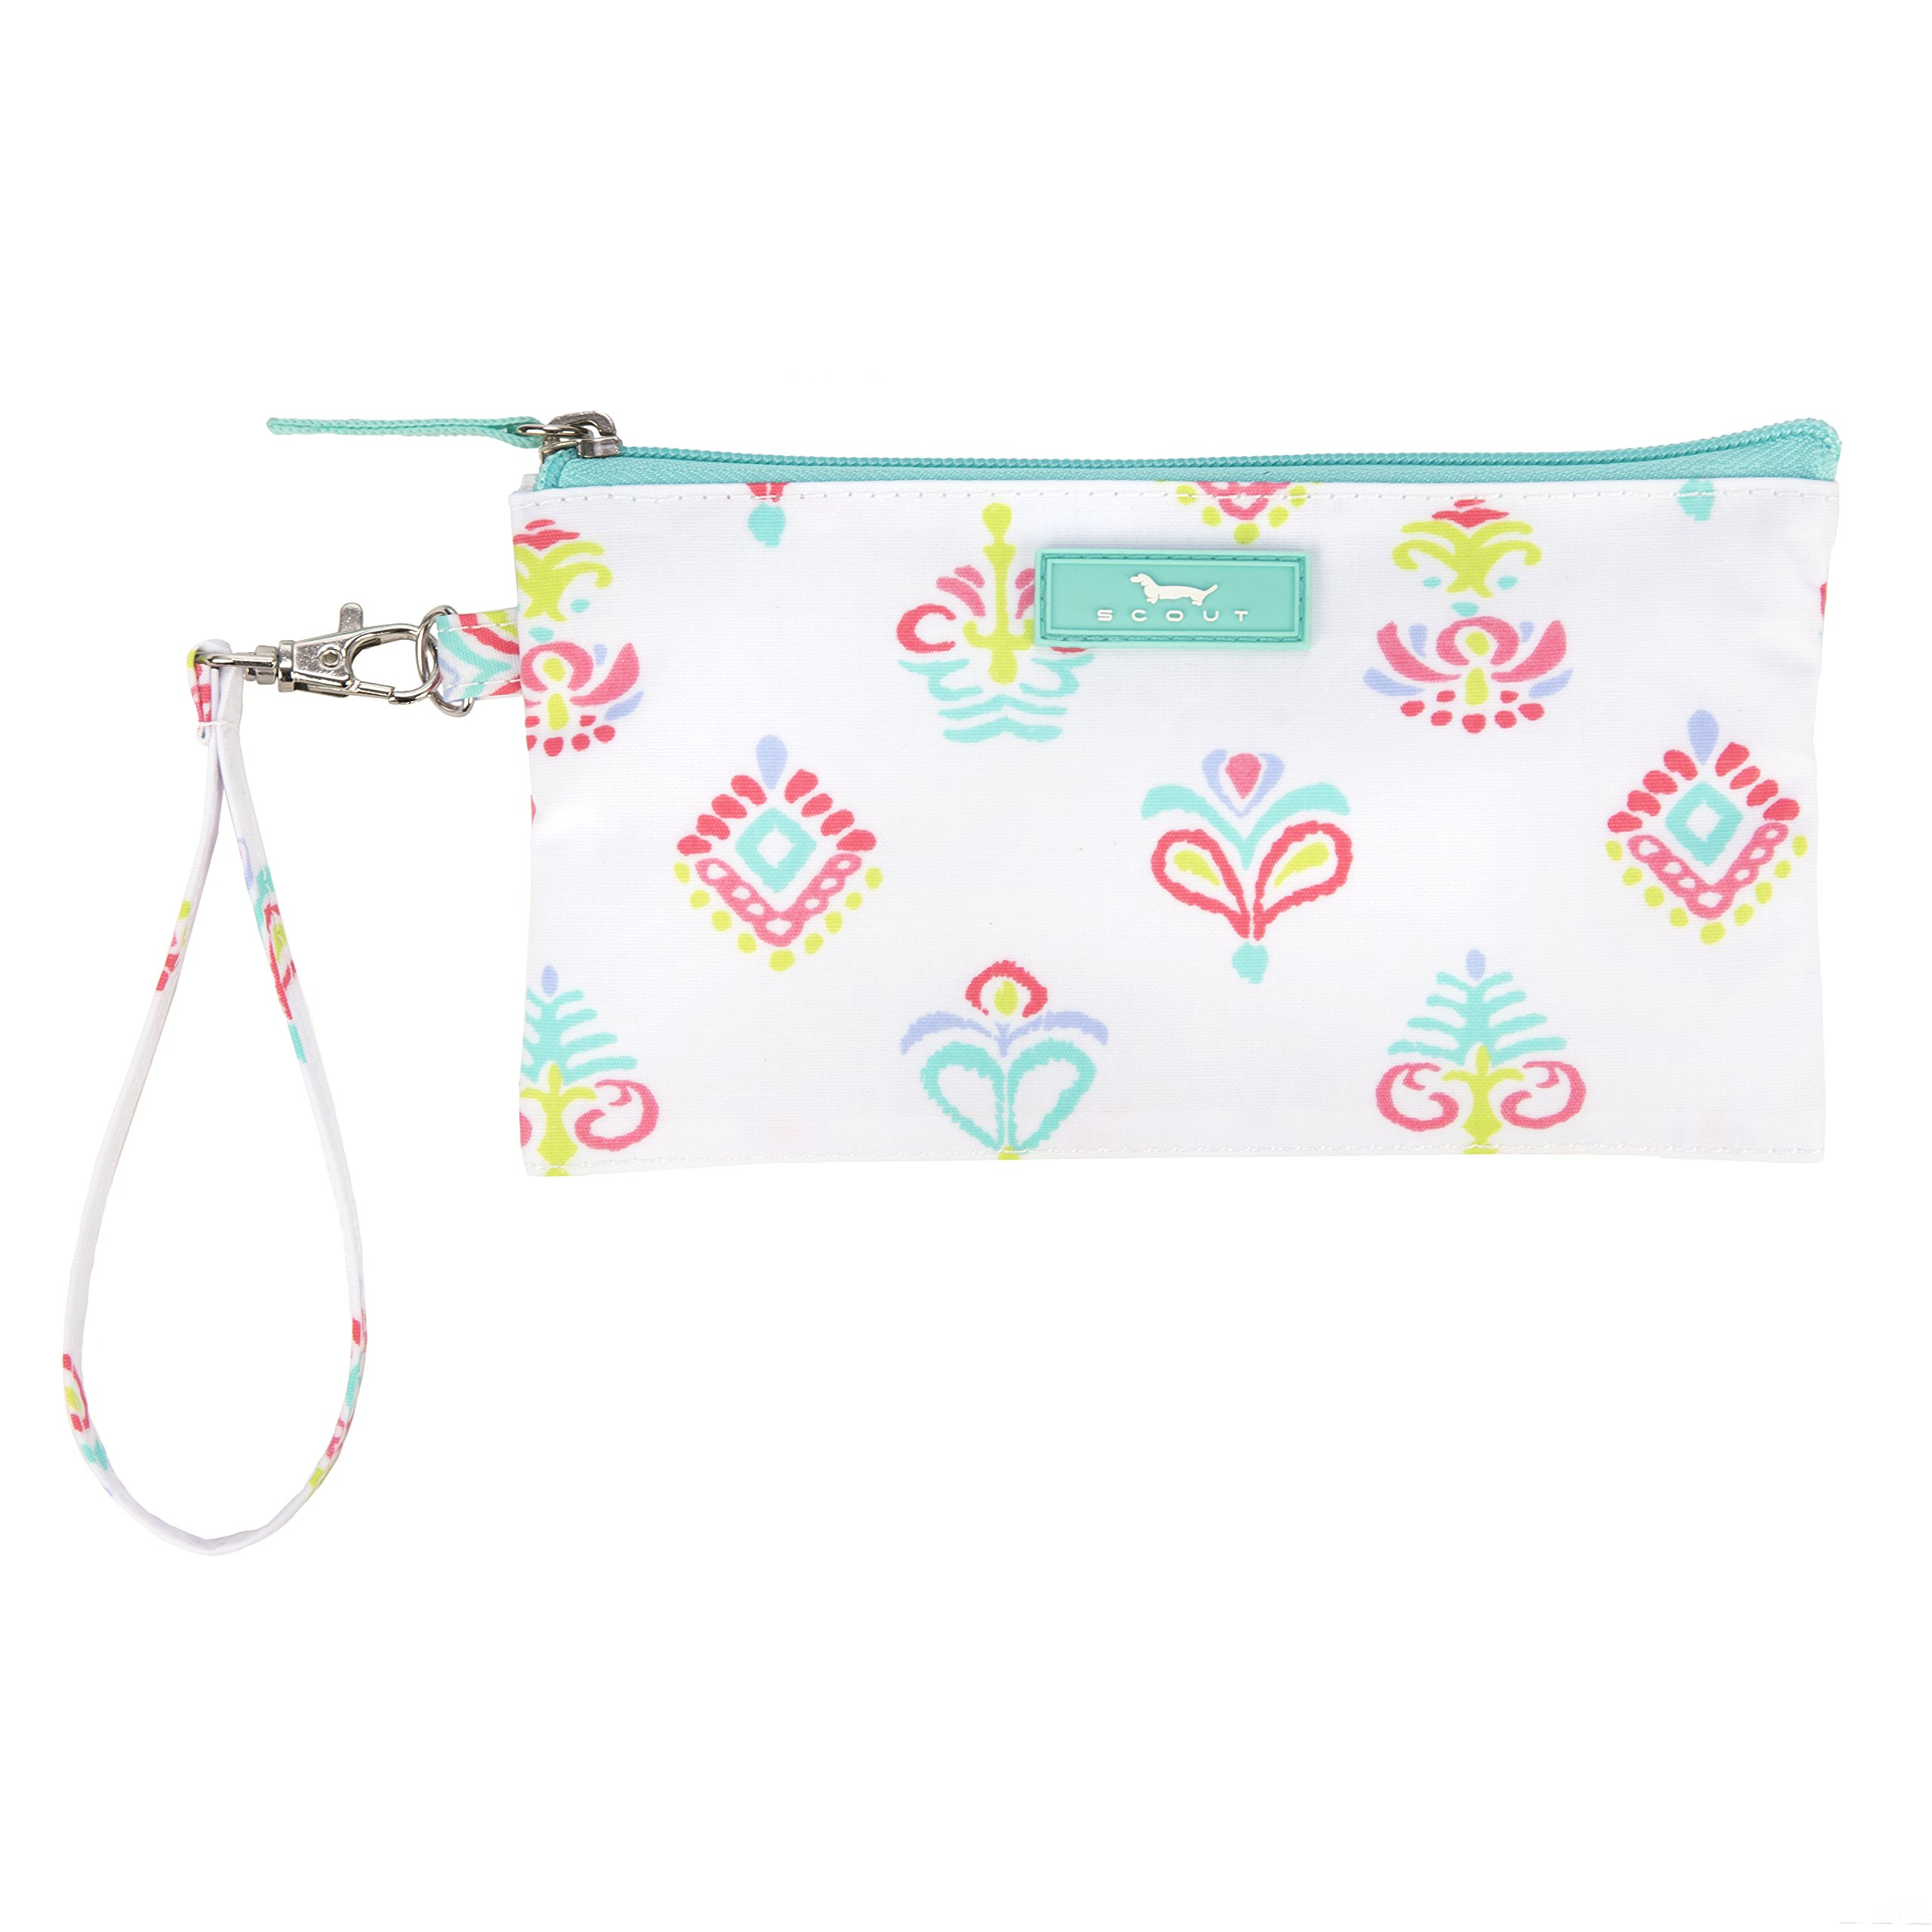 SCOUT Kate Wristlet, Essential Lightweight Clutch, Fits iPhone 6-8, Removable Strap, Water Resistant, Zips Closed, Carnival Y'all